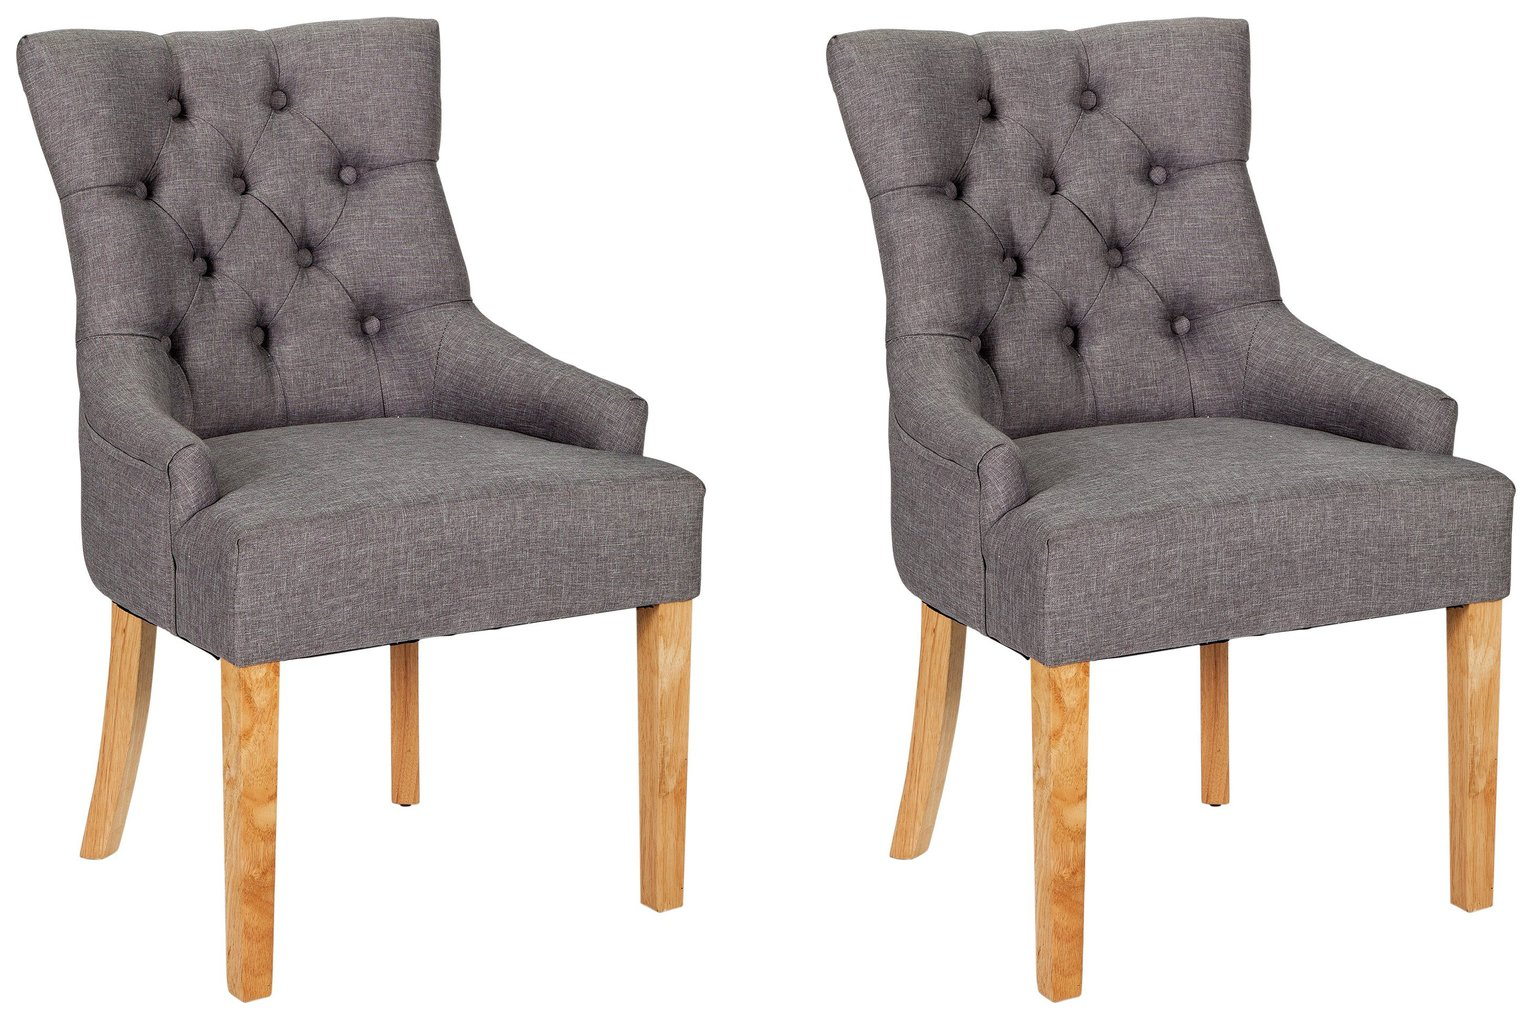 heart of house pair of cherwell dining chairs charcoal ingolf bar stool with backrest white tested for 220 lb width 15 3